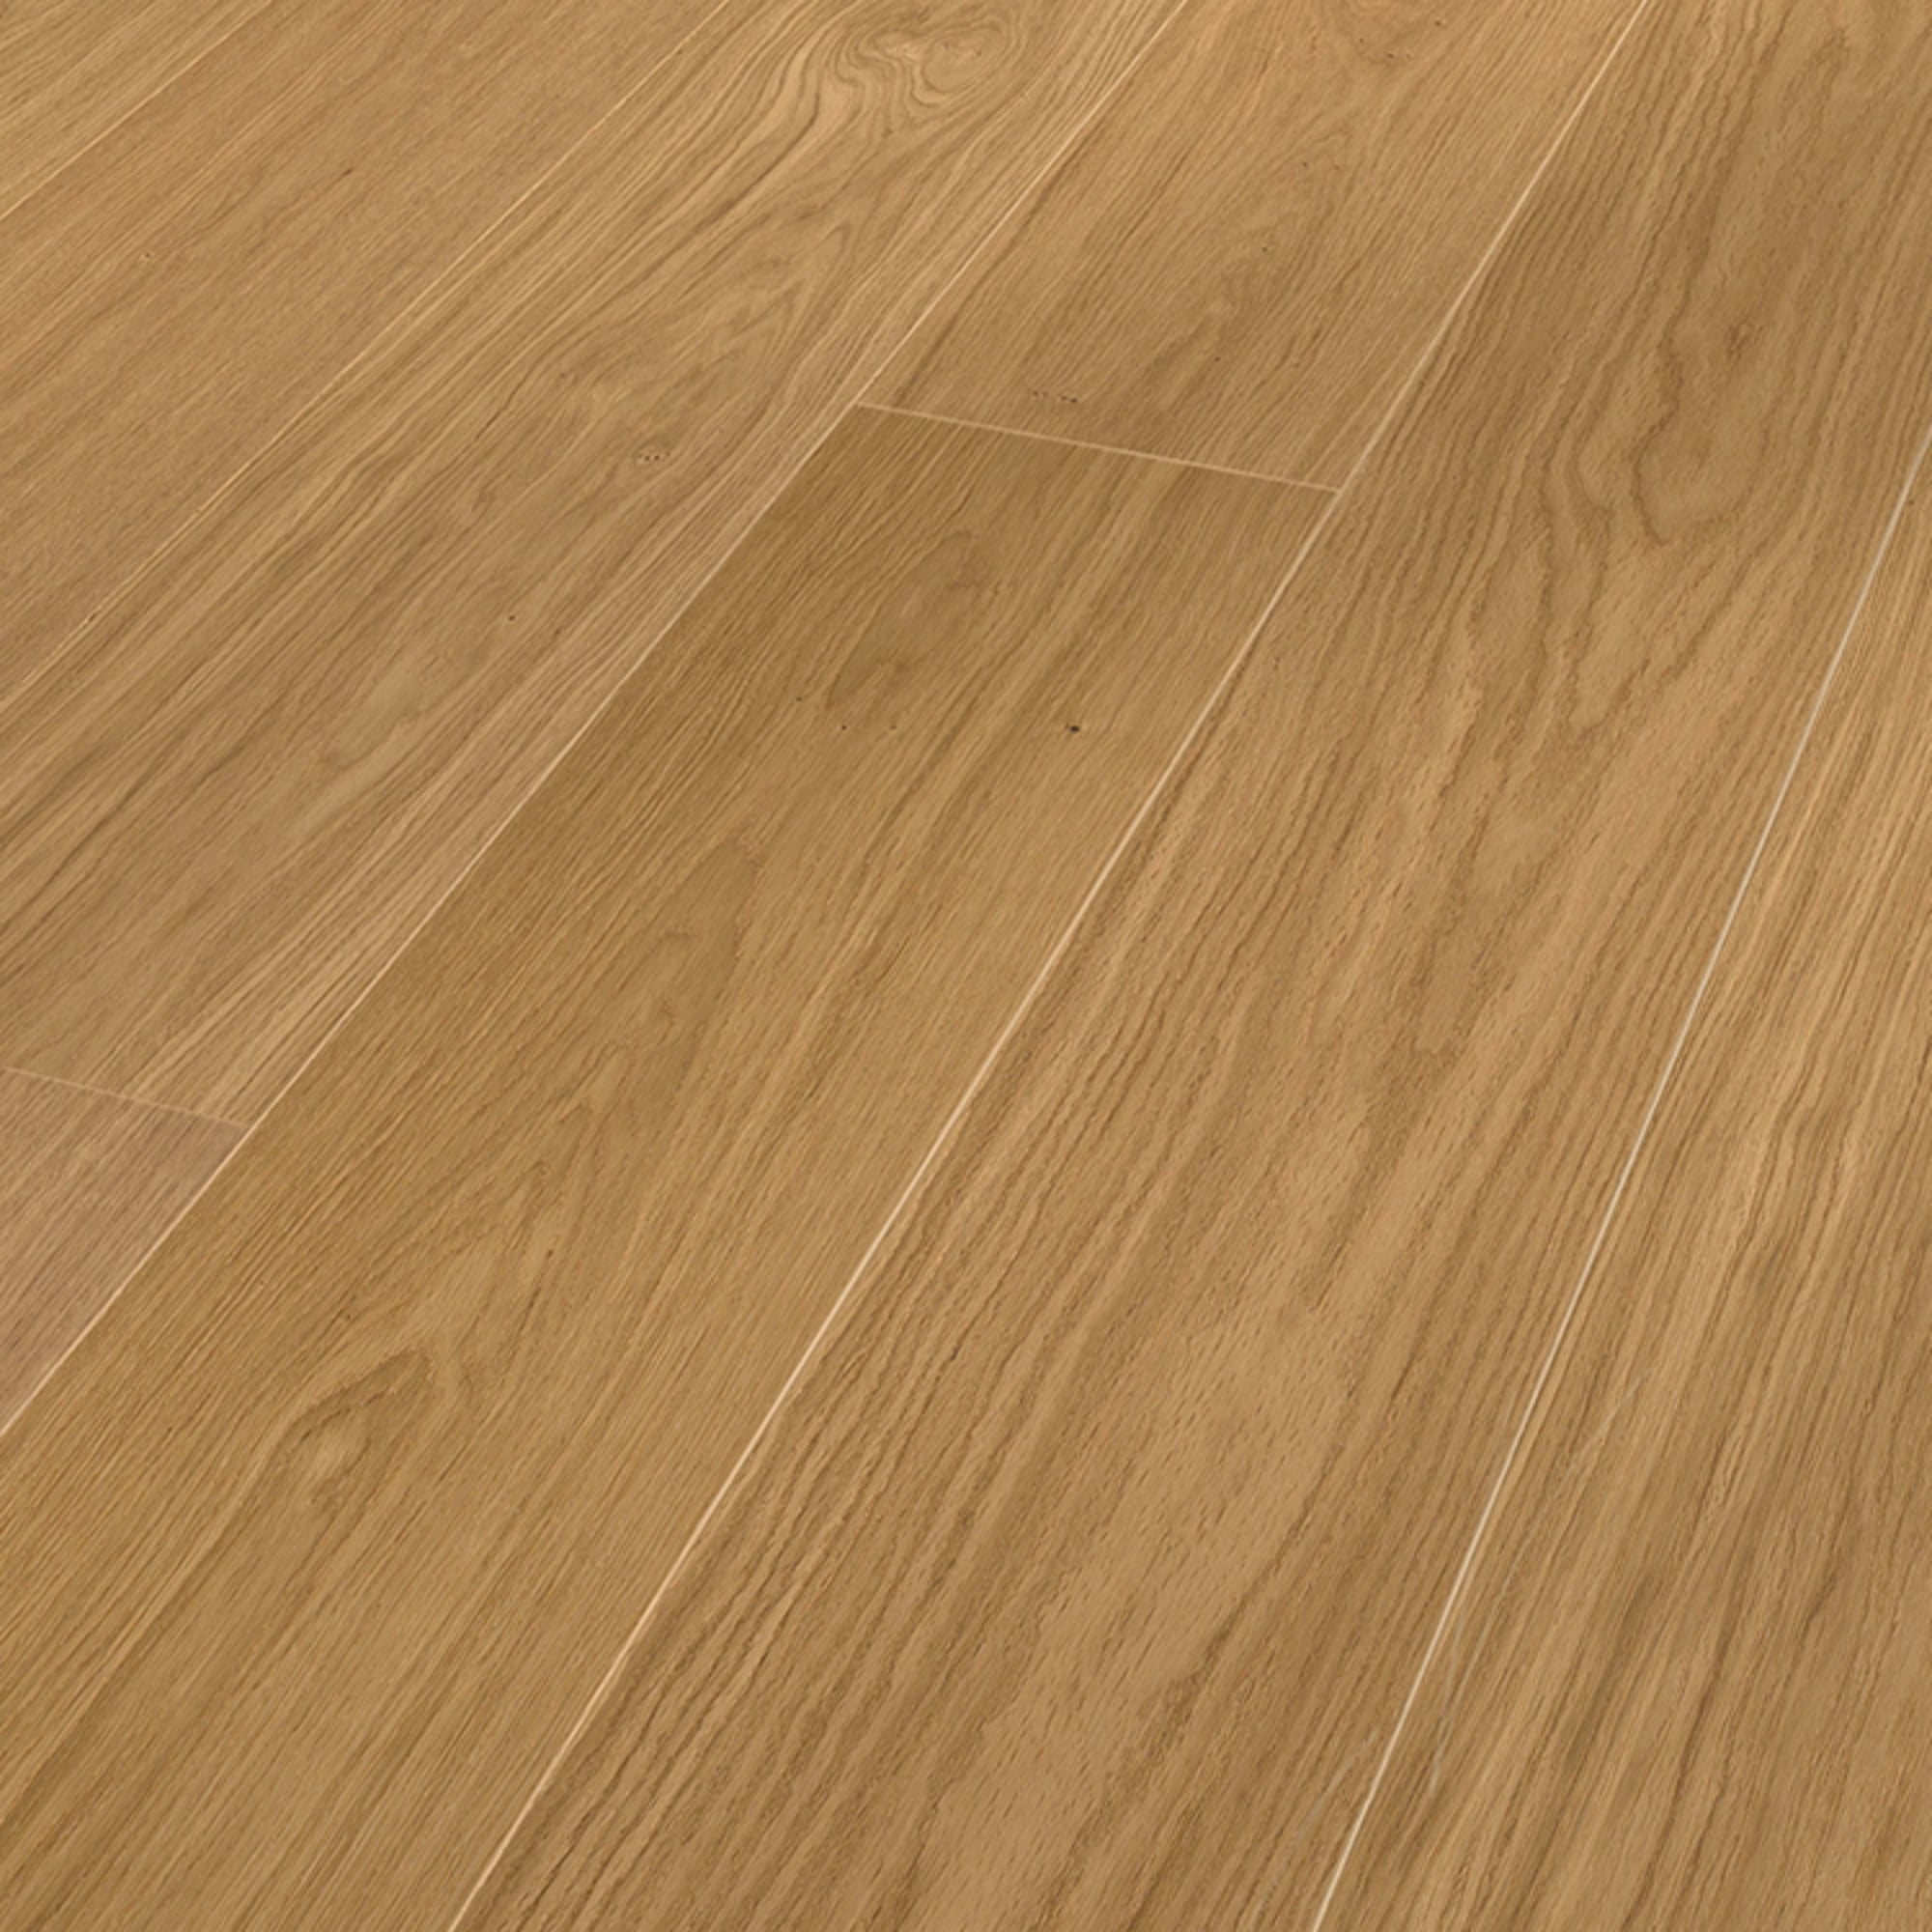 Wood flooring edition m2 uv oiled 13x180mm natural matt for Engineered oak flooring